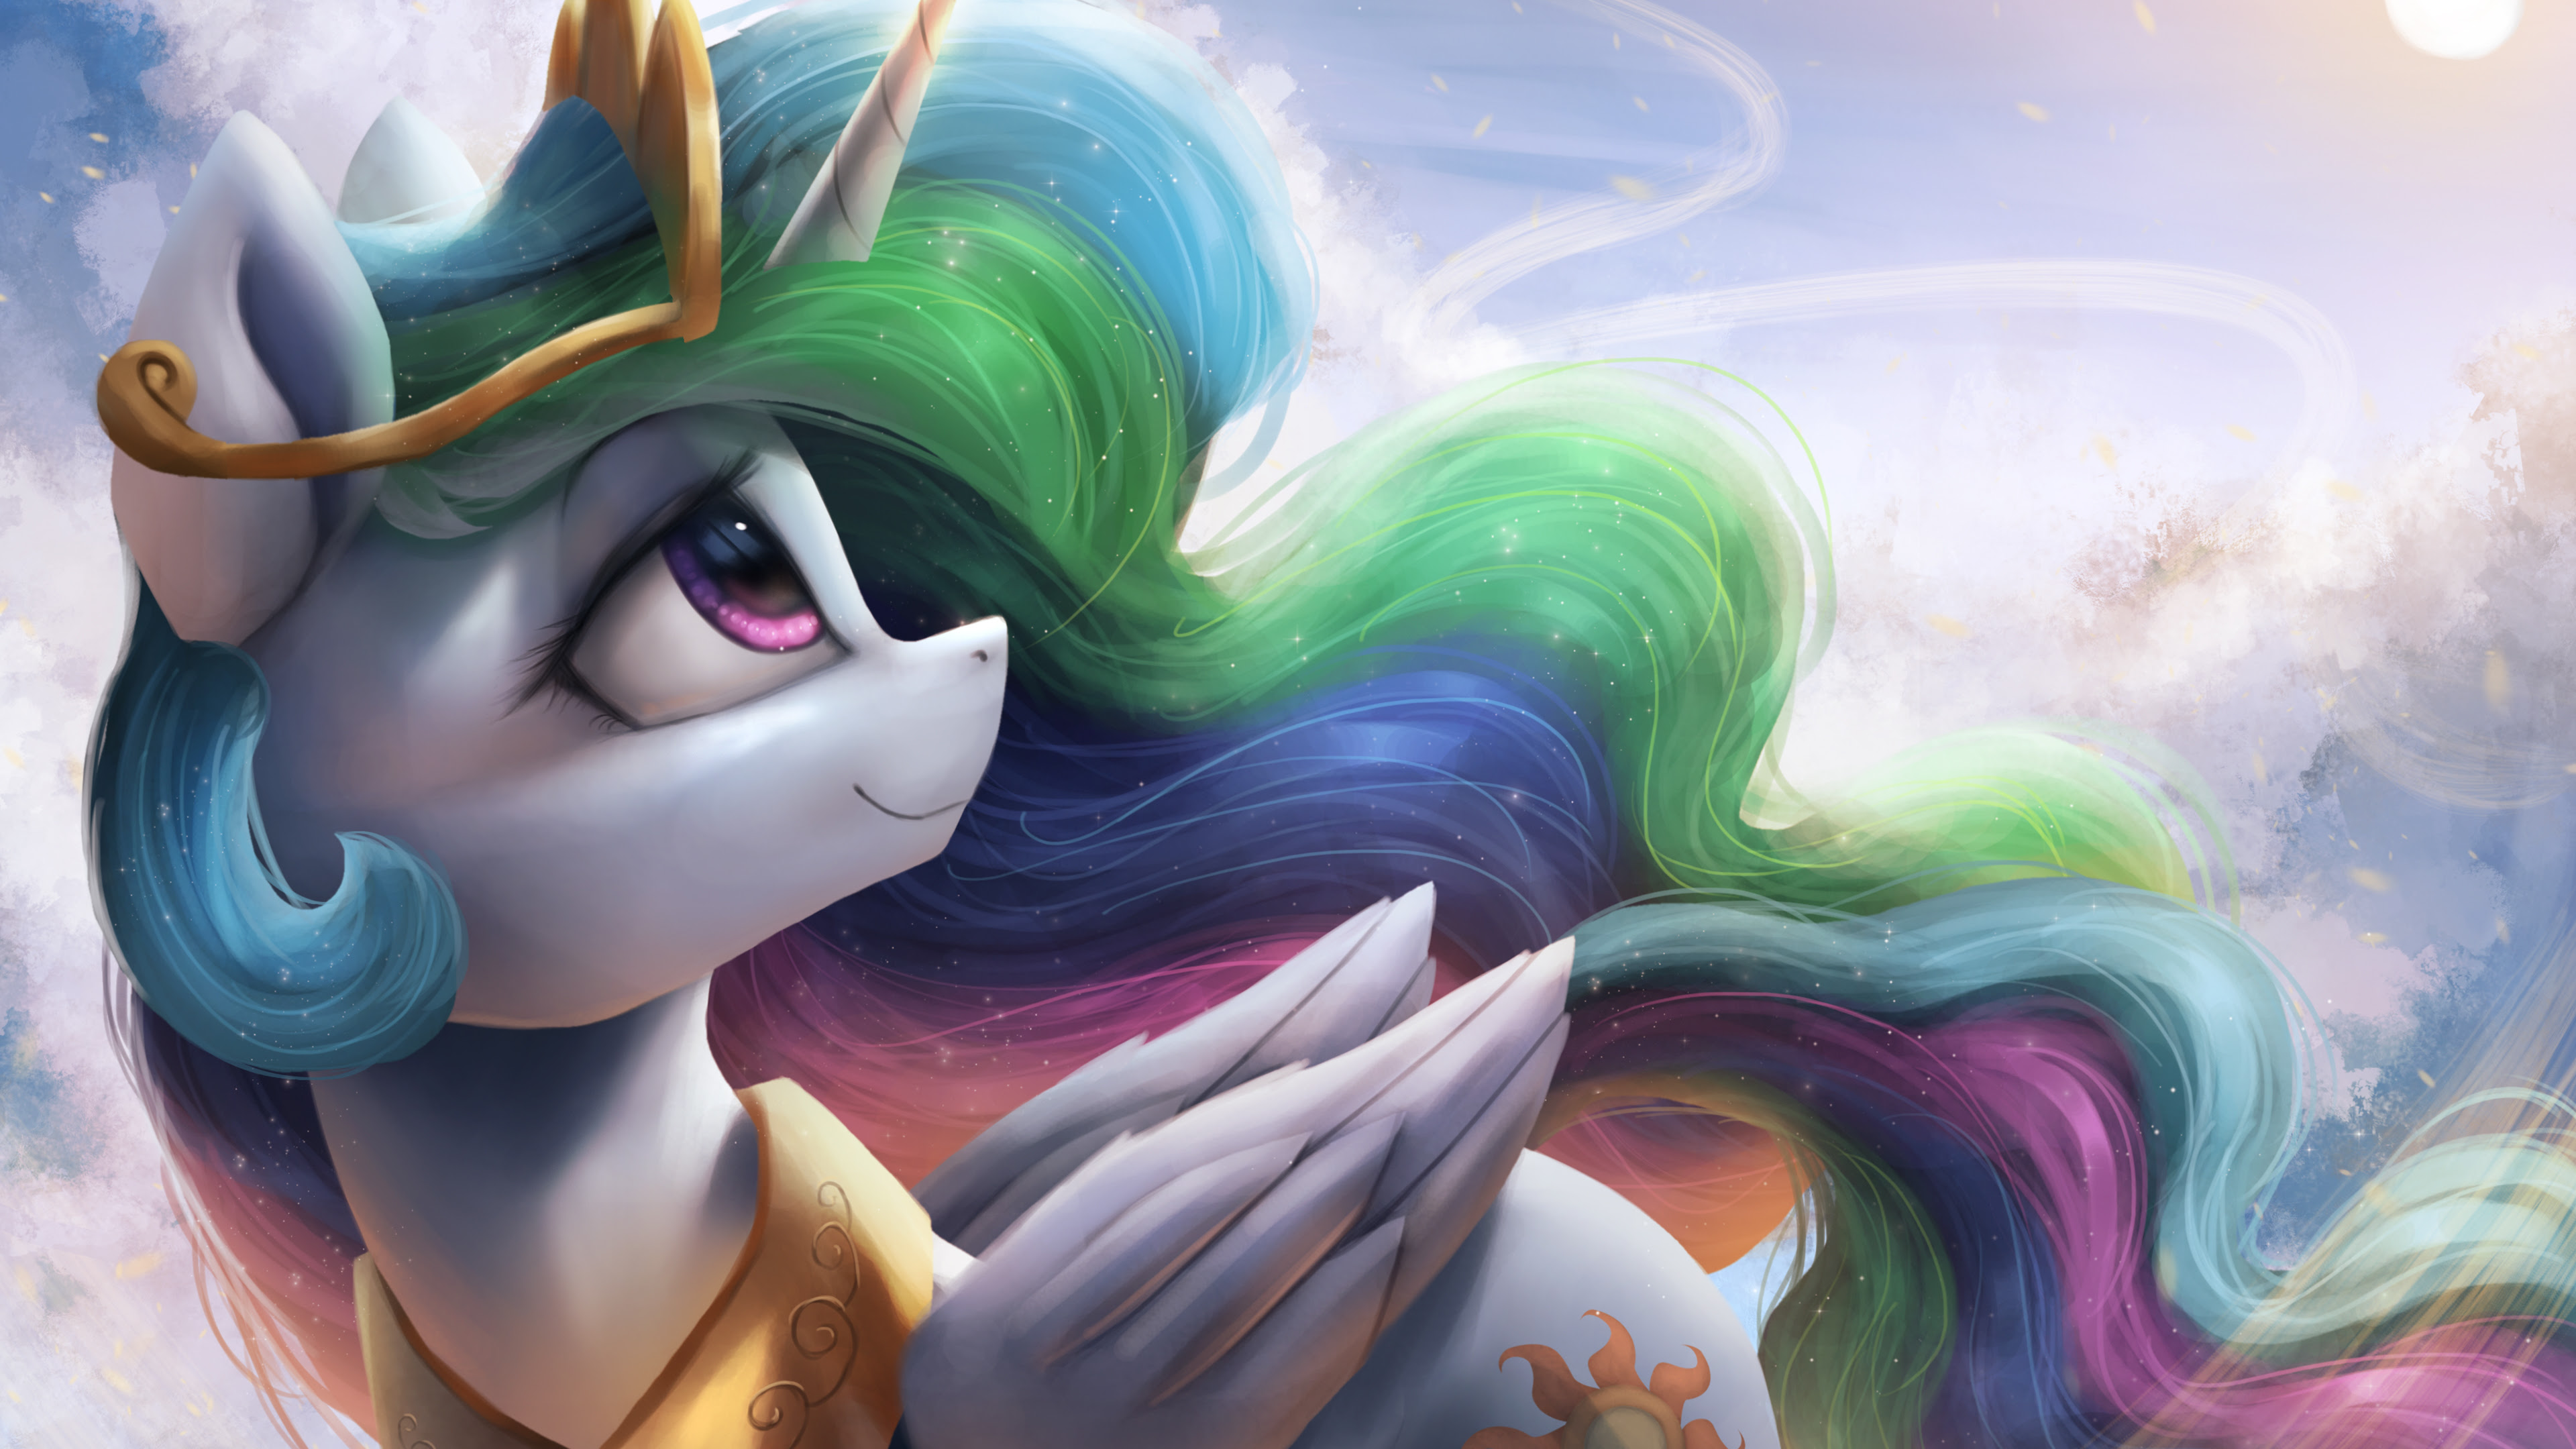 My Little Pony Princess Celestia 4k Wallpapers Hd Wallpapers